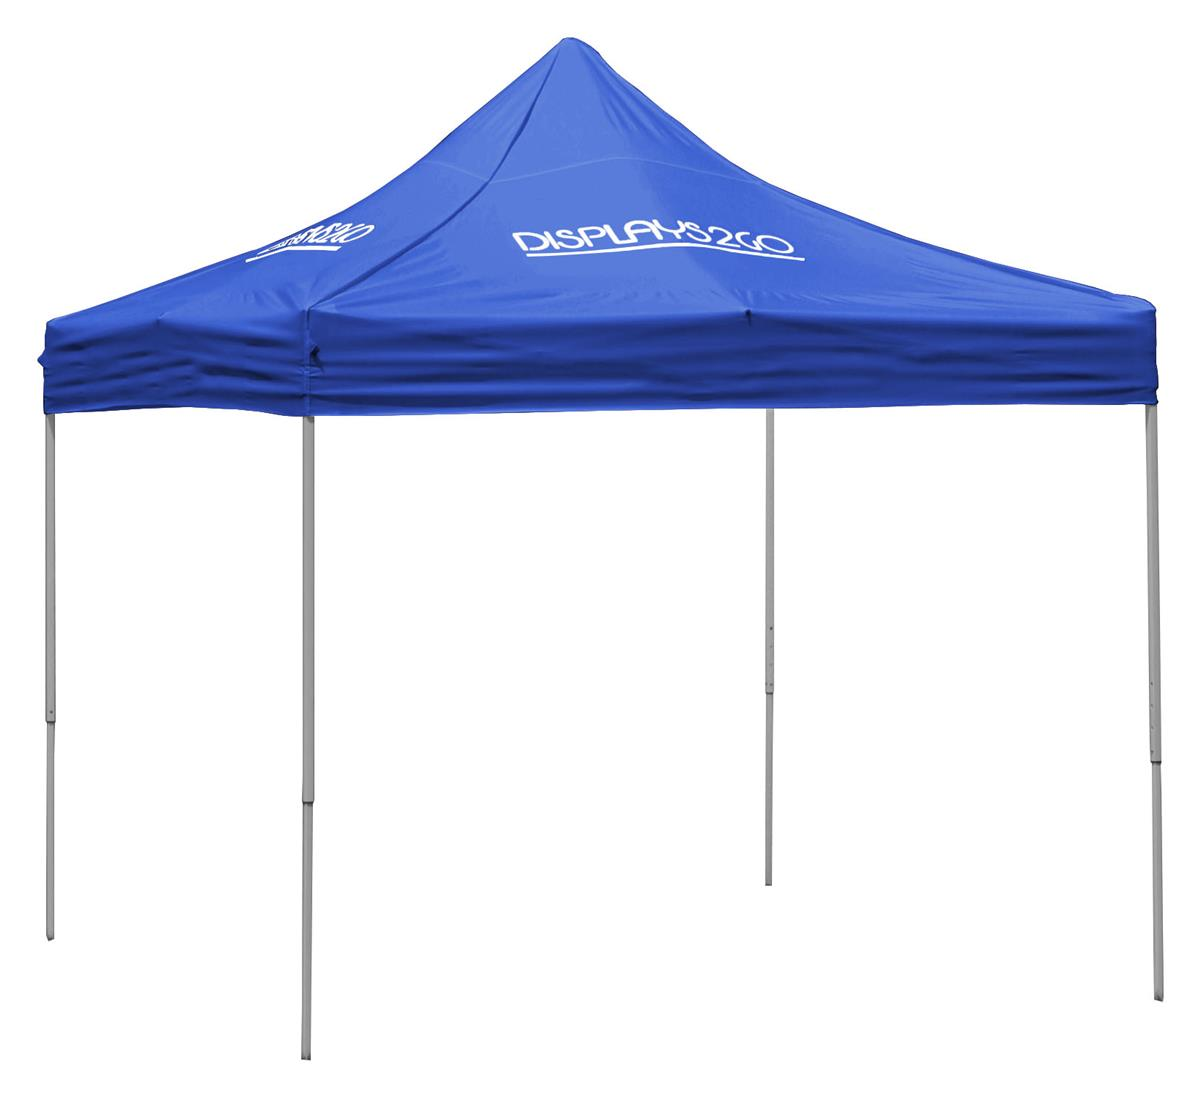 Royal Blue Pop Up Tent Outdoor Canopy With Custom Printing